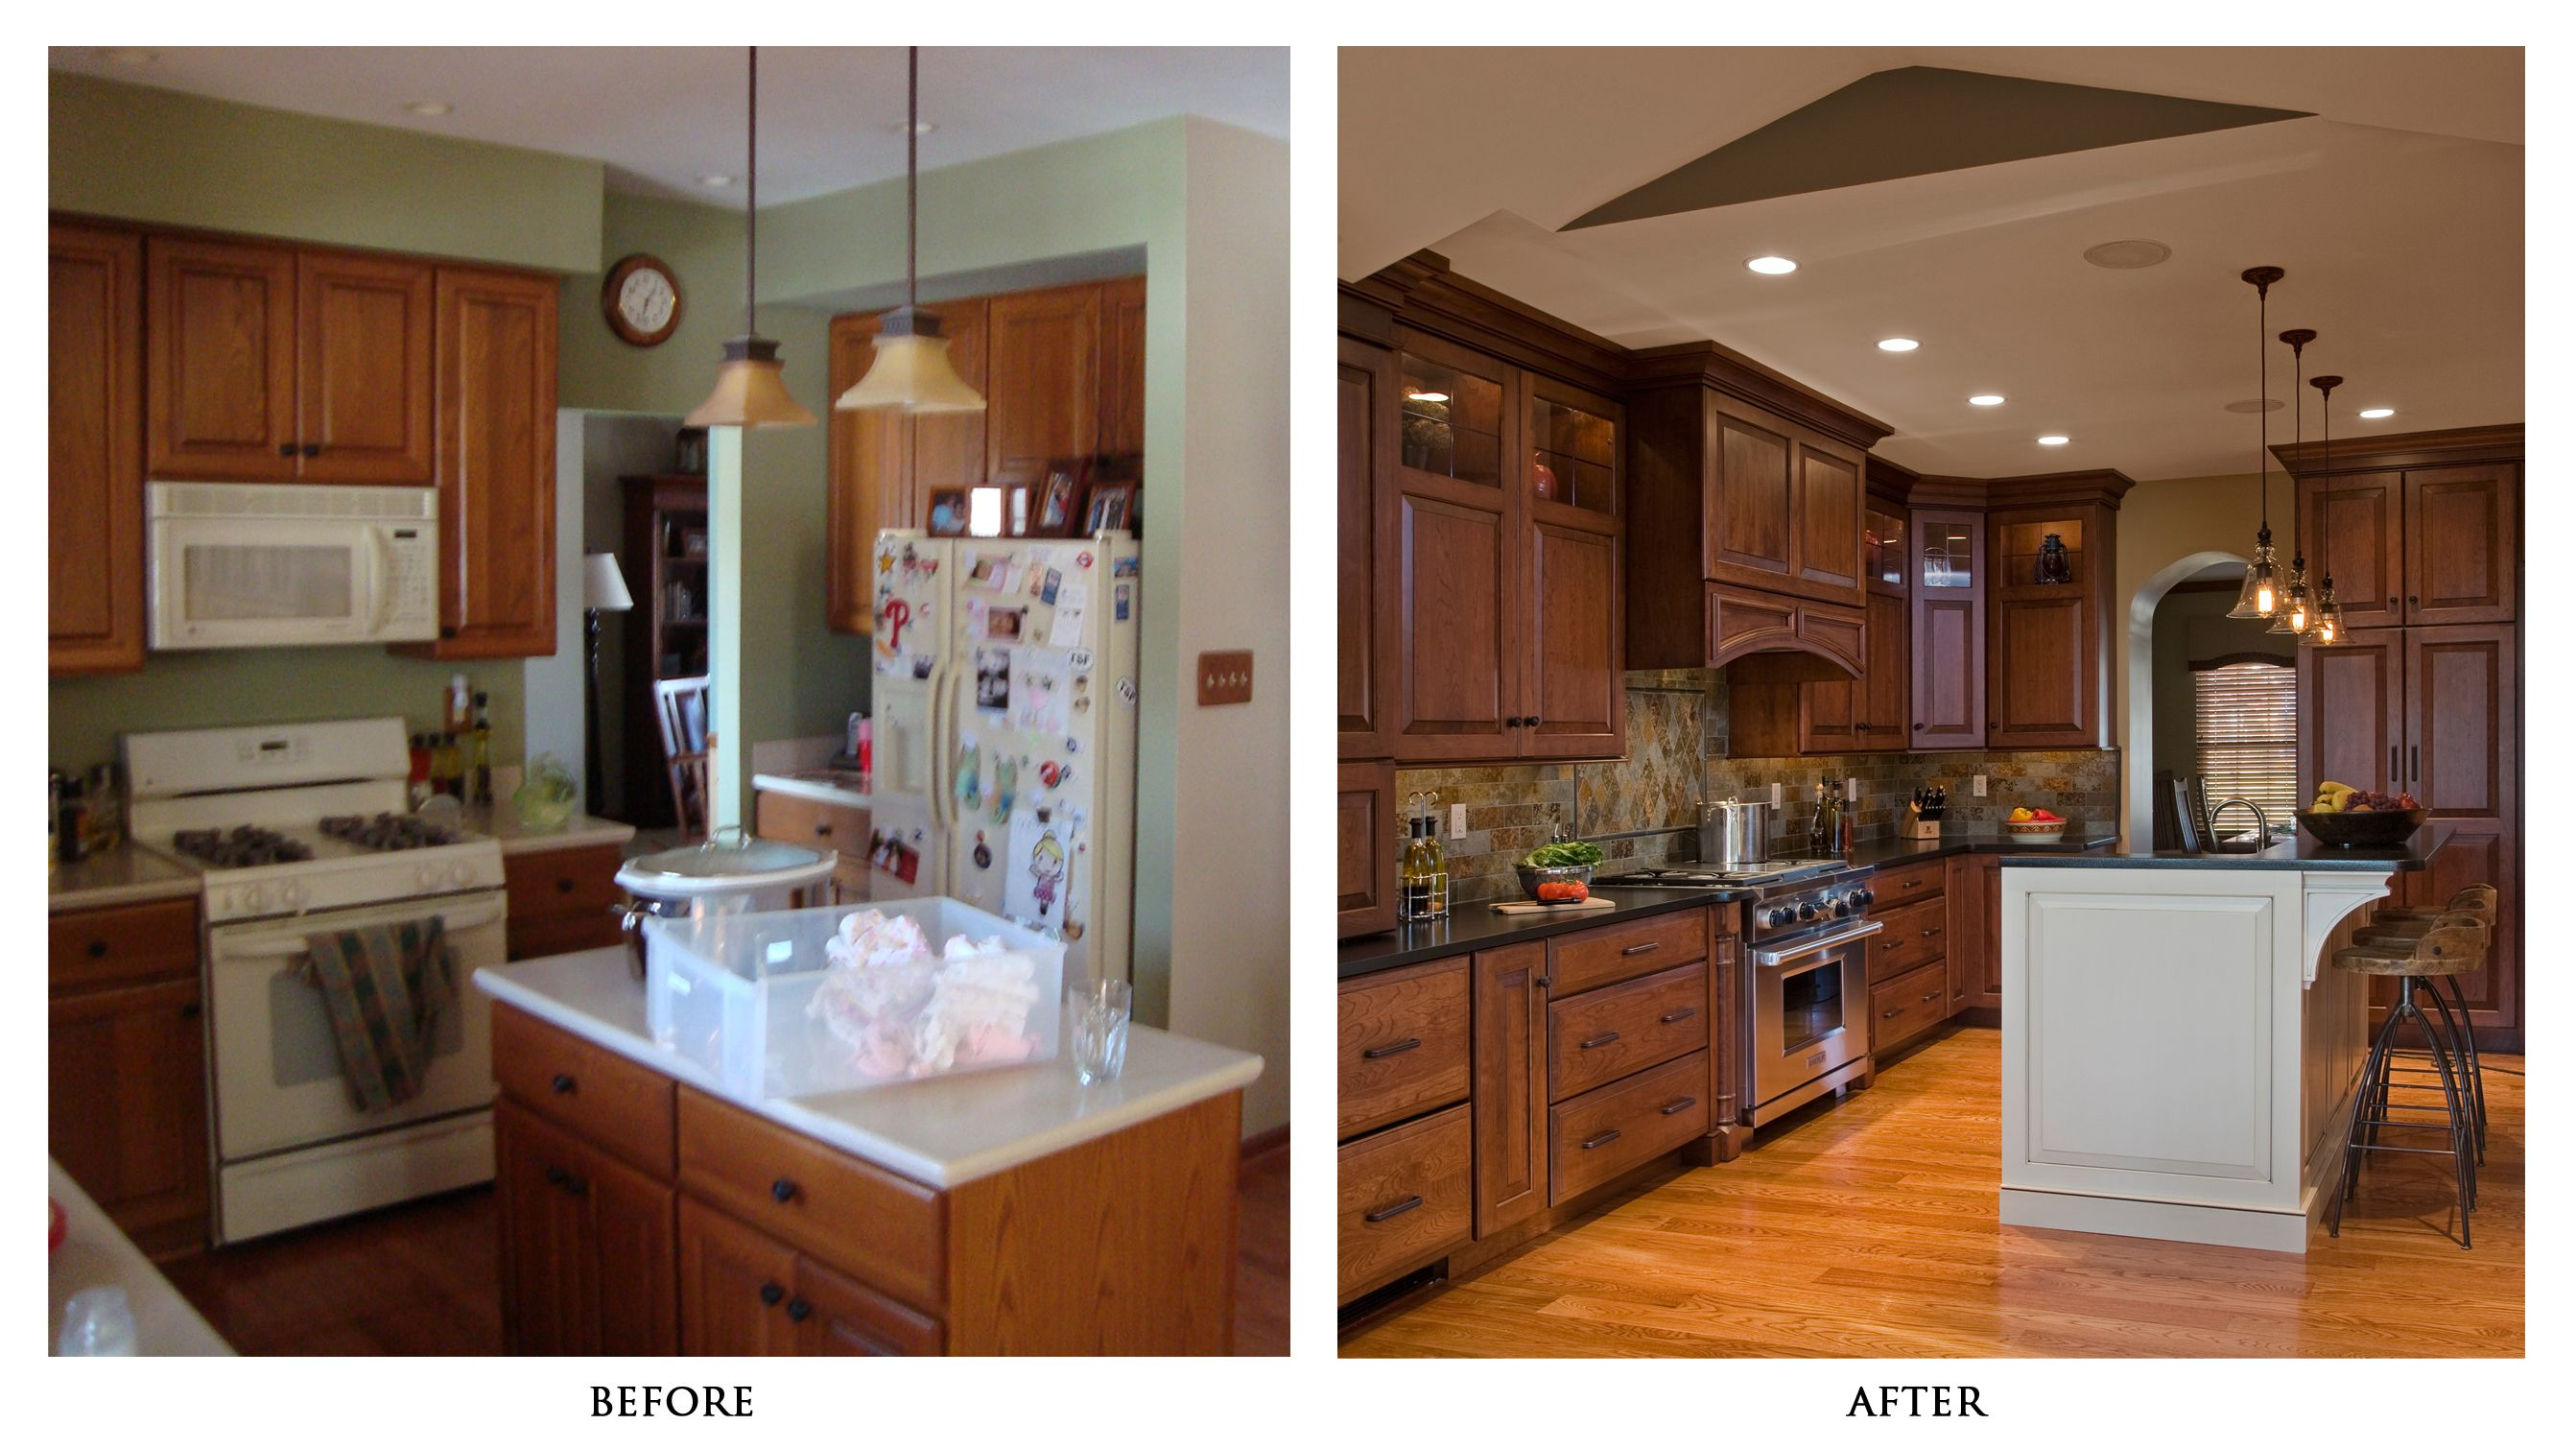 Remodel Kitchen Before And After Enchanting Kitchen Remodels Before And After Photos  Kitchen  Pinterest Inspiration Design